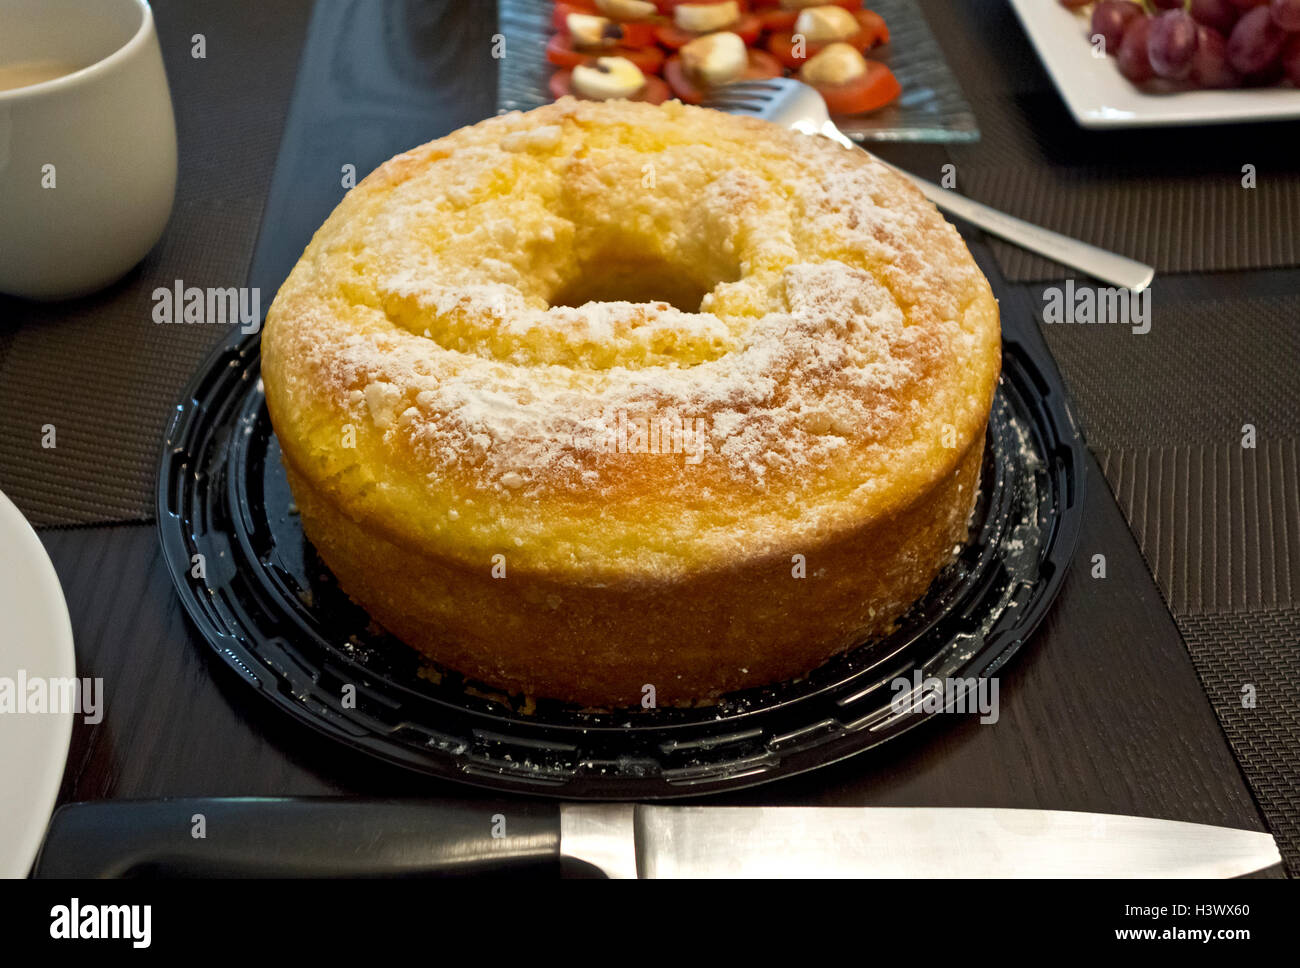 Lemon Bundt cake dusted with icing sugar, on a table for tea. - Stock Image